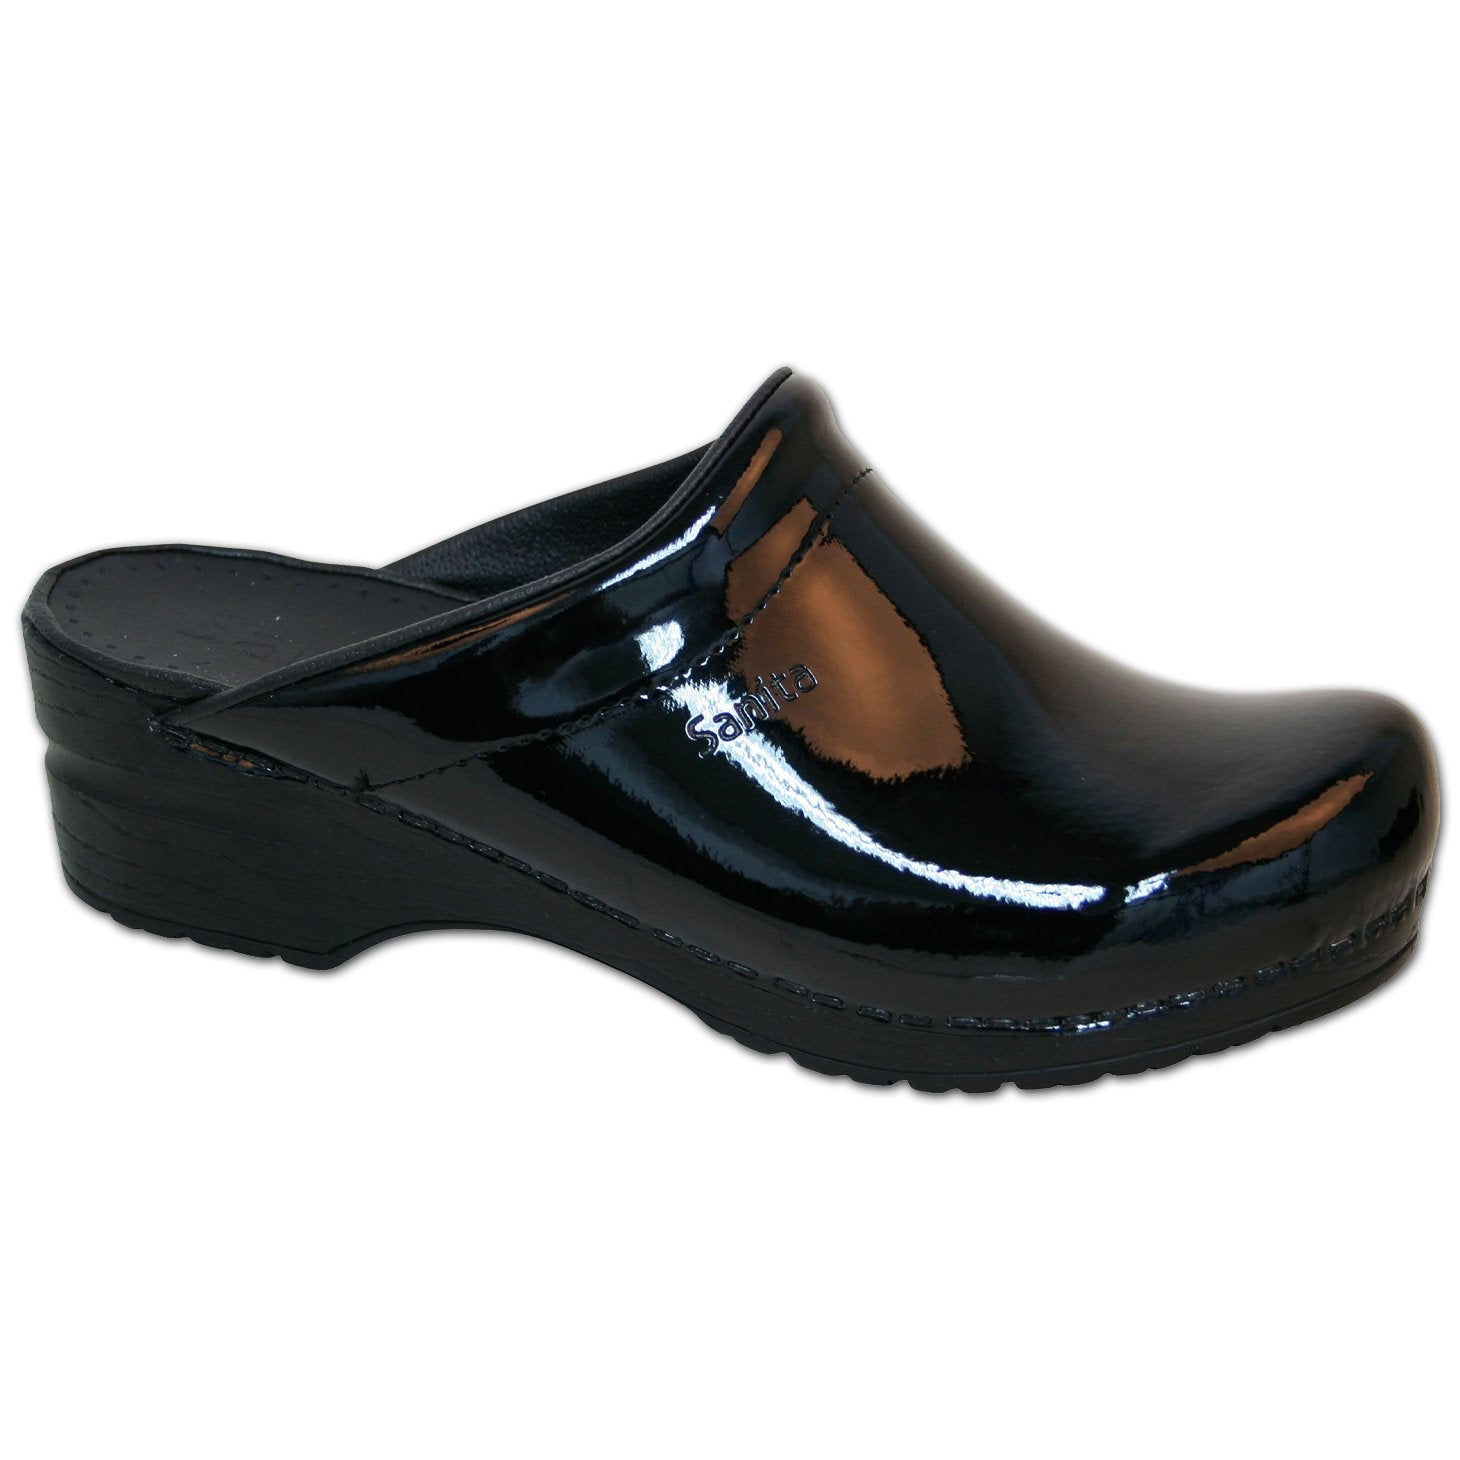 Sonja Patent Women's - Second